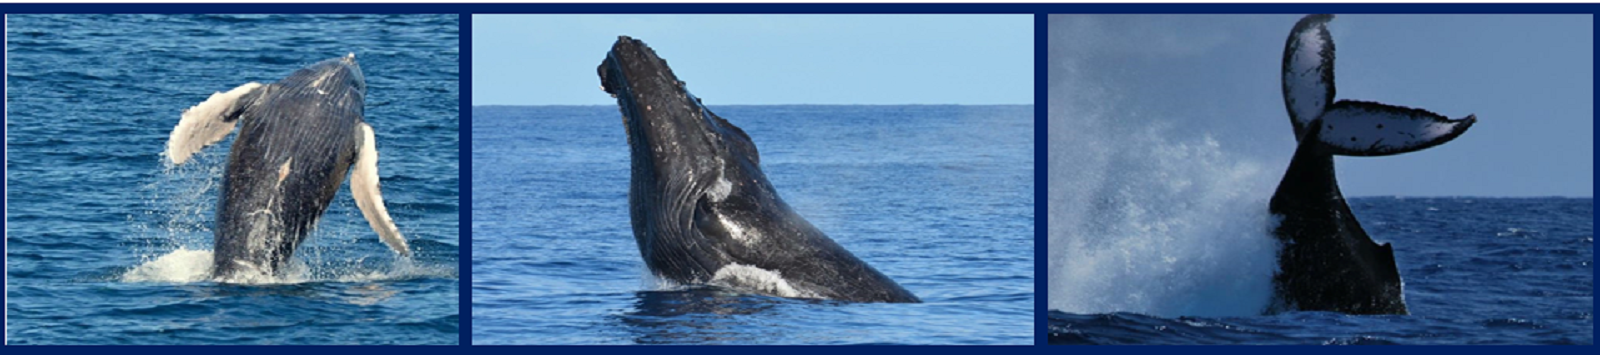 Learn about Hawaii's Humpbacks